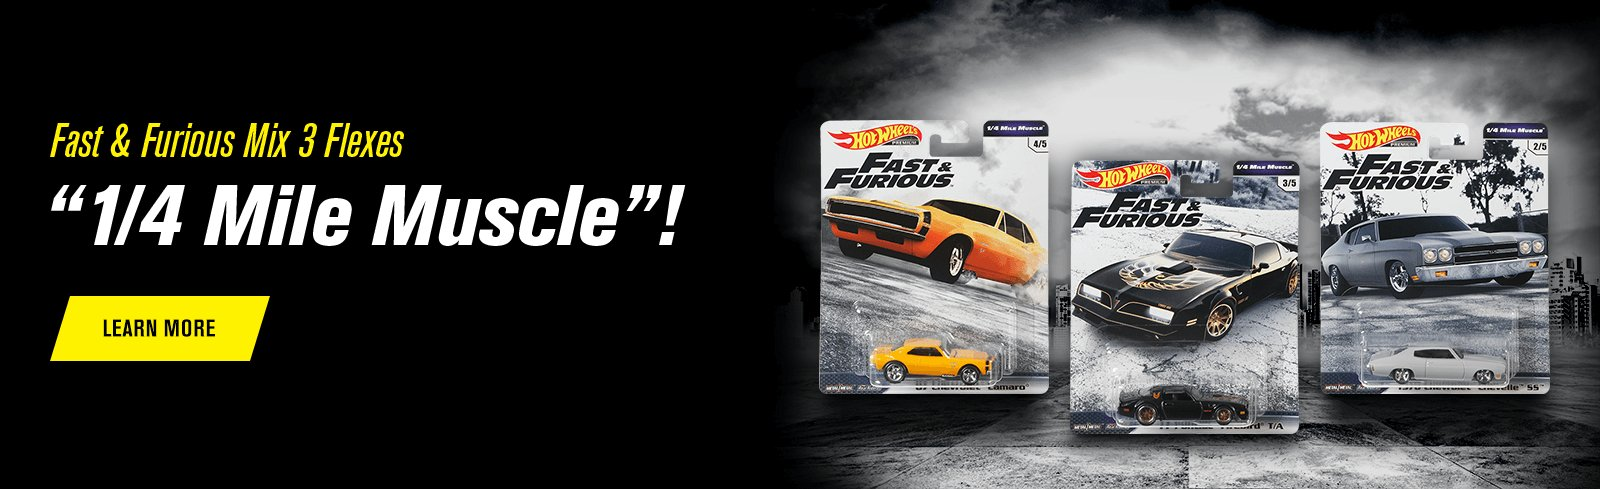 "Fast & Furious Mix 3 Flexes ""1/4 Mile Muscle""!"